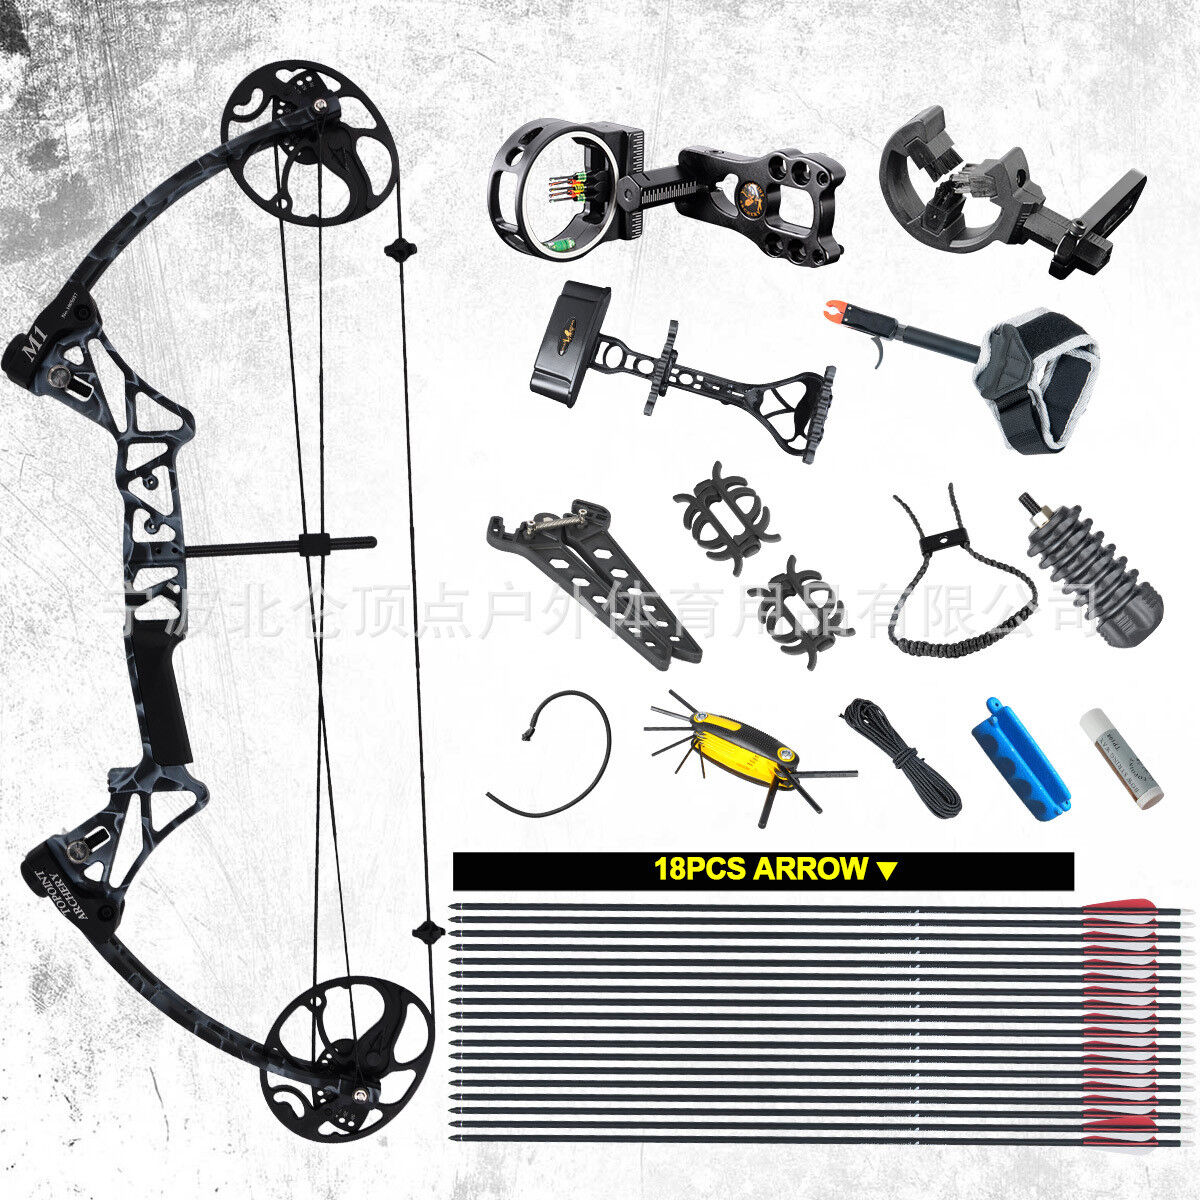 TOPOINT M1 15-70LB Compund Bow and Arrow Hunting Target Archery Adult Set Whole